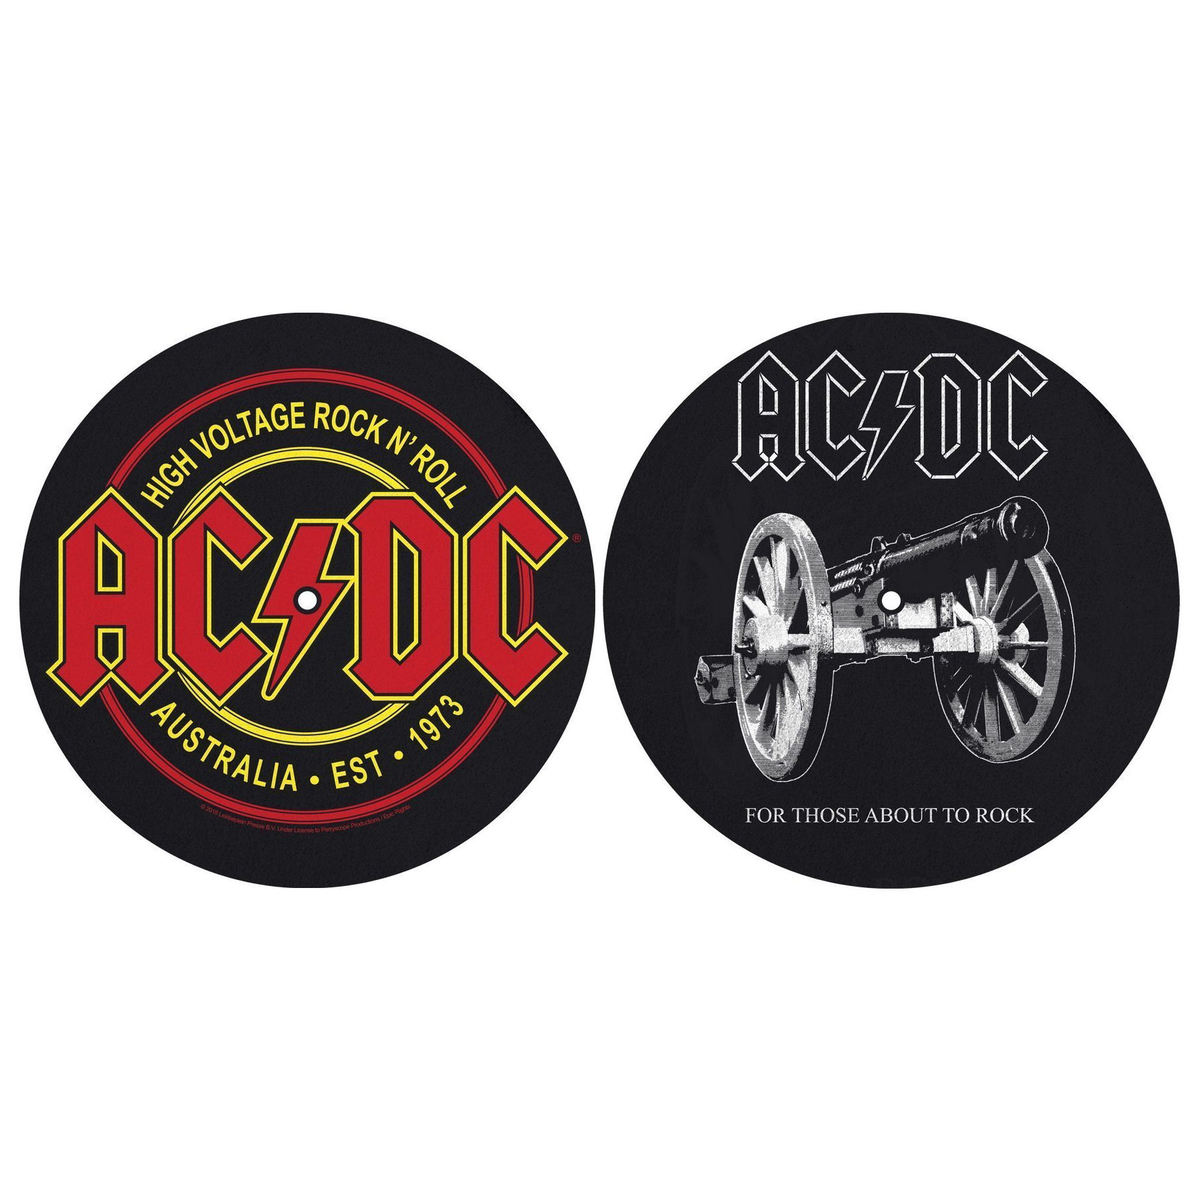 podložka na gramofon (set 2ks) ACDC - FOR THOSE MOUT TO ROCK - HIGH VOLTAGE - RAZAMATAZ - SM009